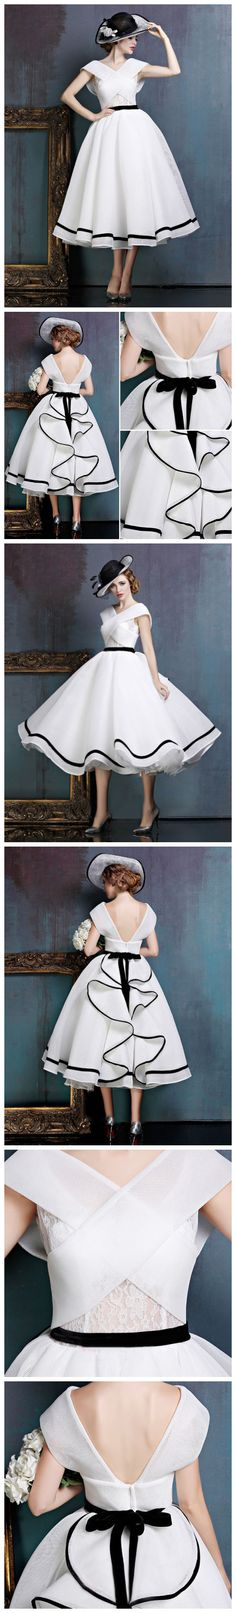 CHIC A-LINE OFF-THE-SHOULDER WHITE TULLE FLOUNCING MODEST TEA LENGTH PROM DRESS AM546 #fashion #style #long #prom #party #evening #beauty #chic #modest #love #bridal #promdress #promdresses #longpromdress #longpromdresses #eveningdress #tealengthpromdress #whitepromdress